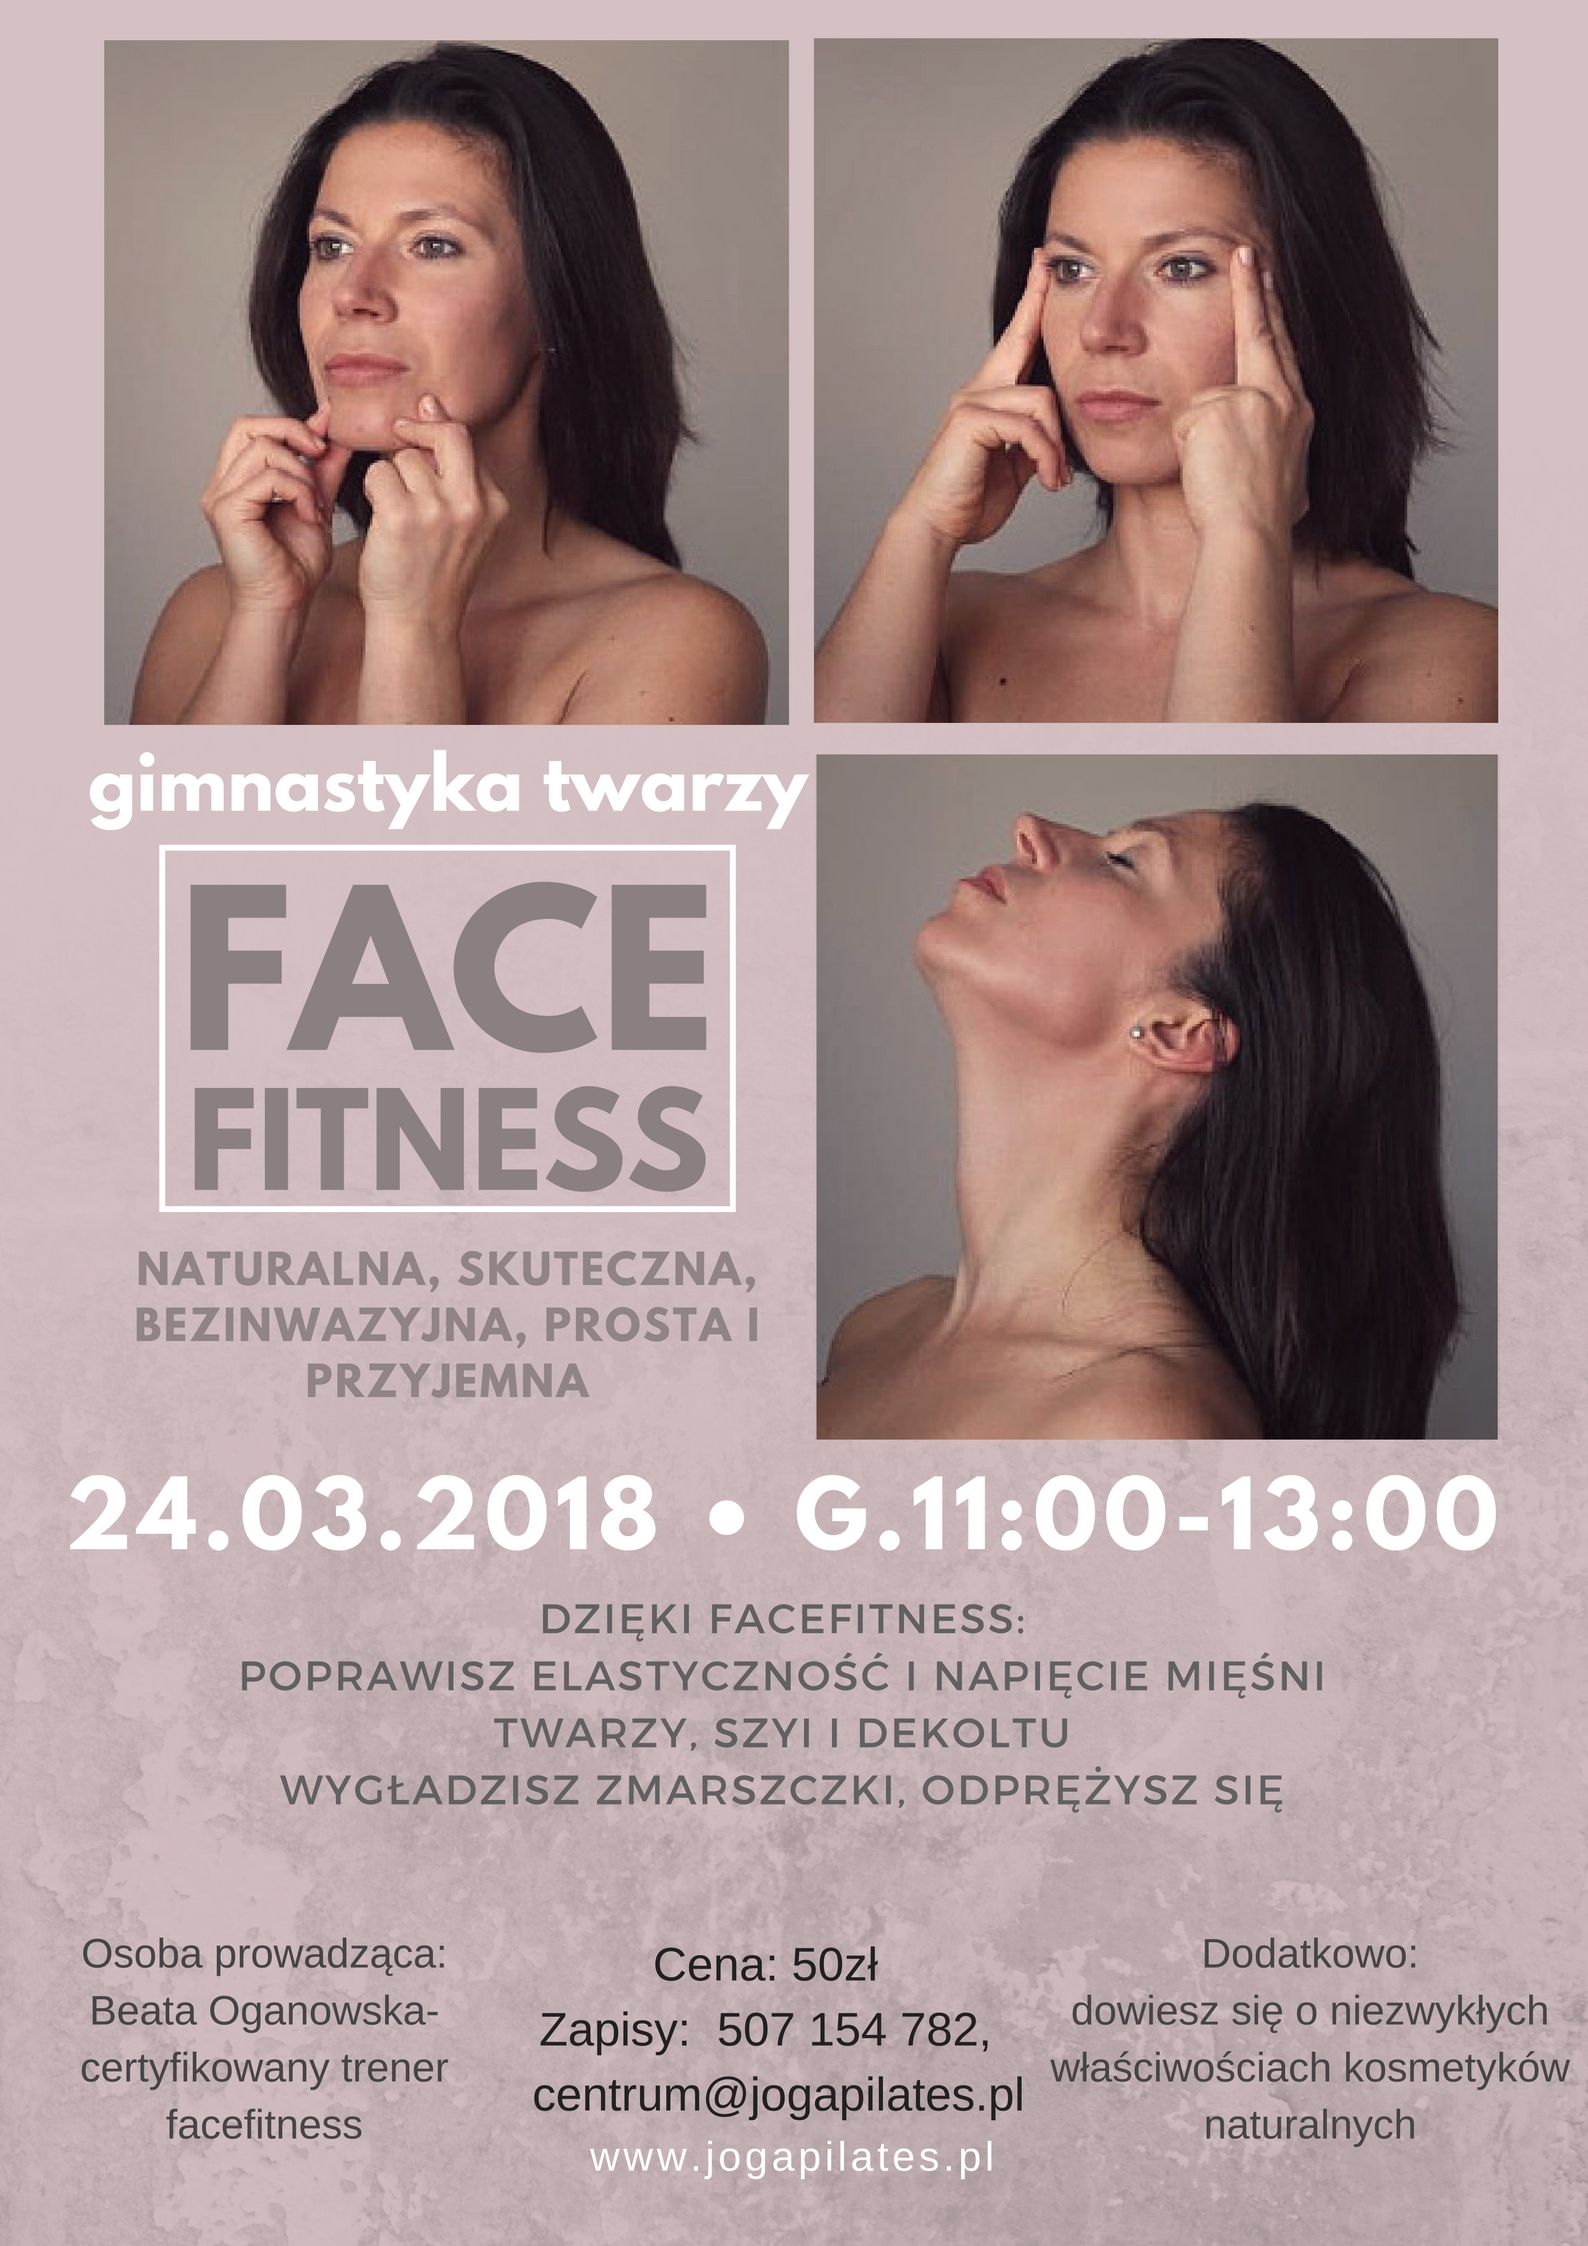 facefitness copy